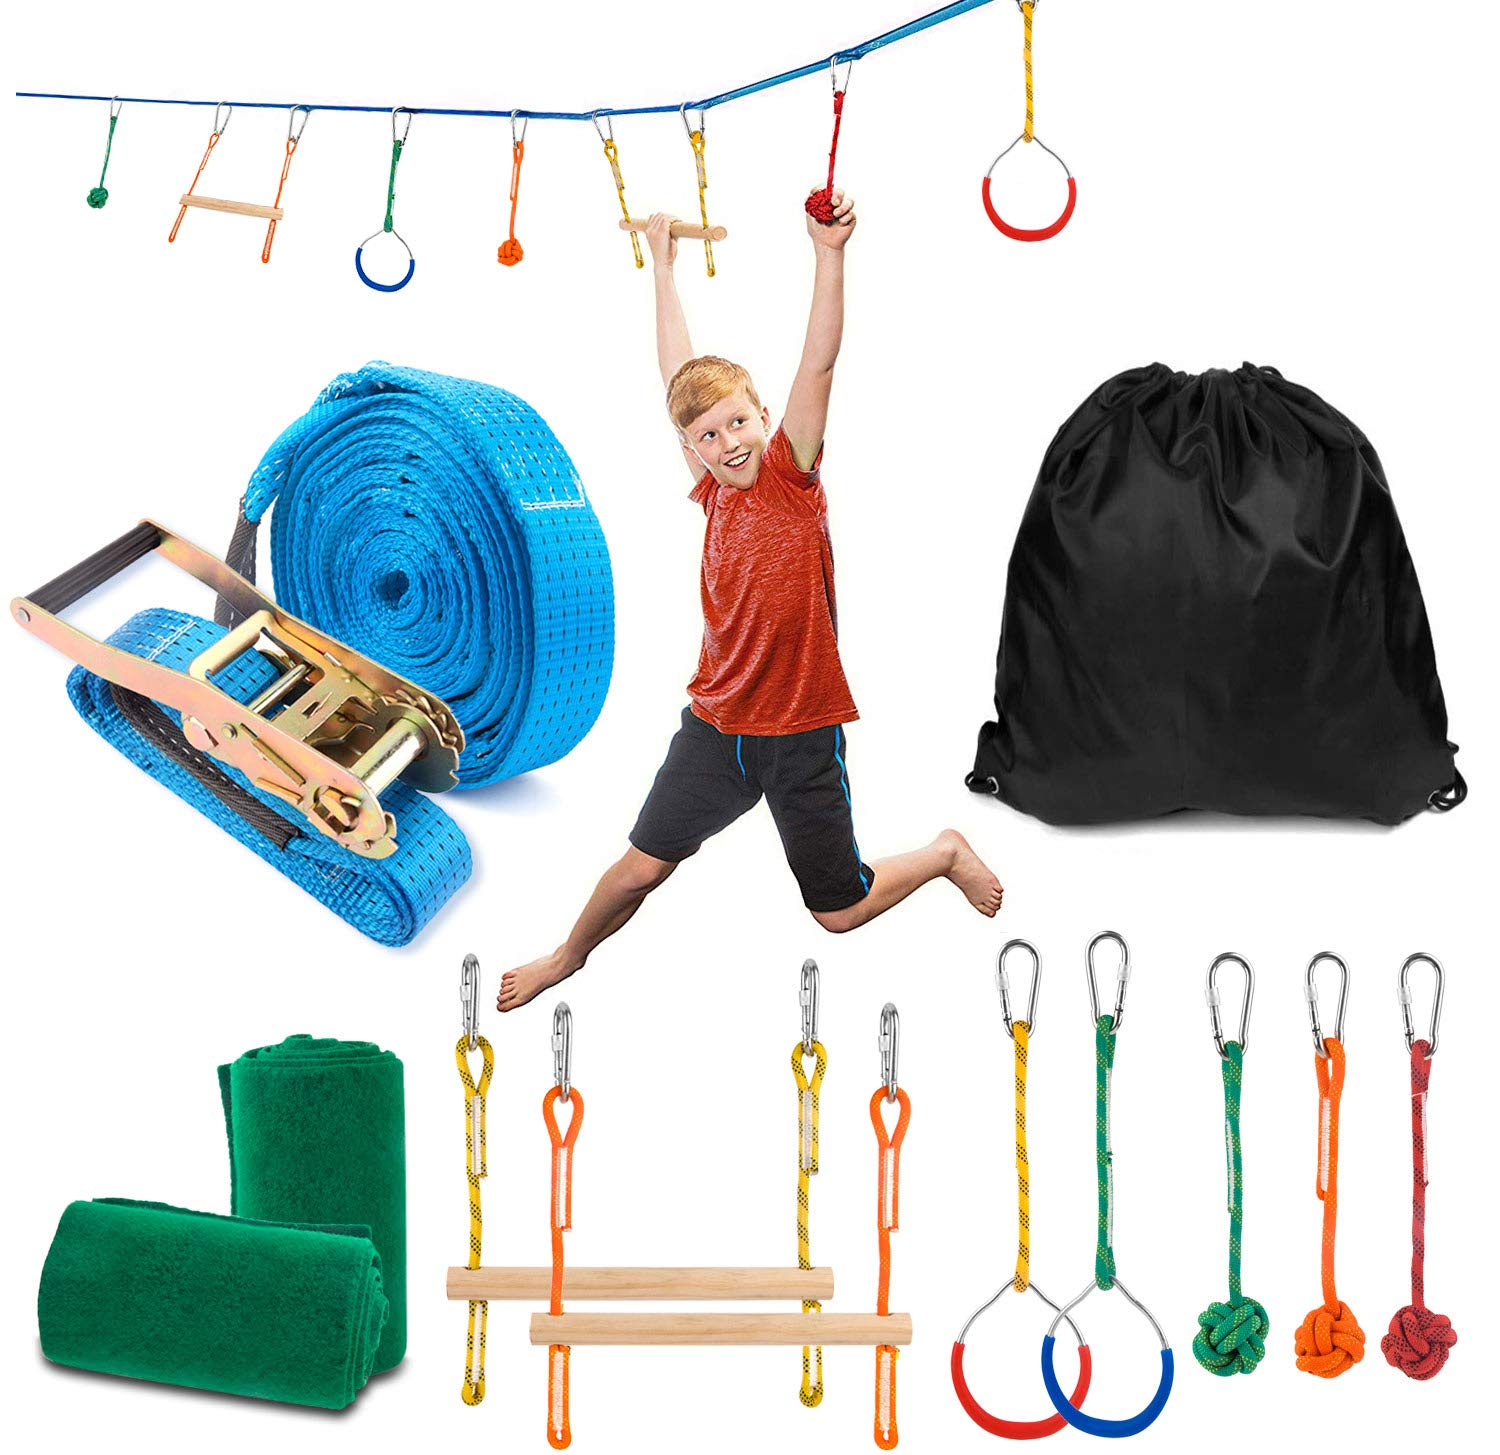 Sonyabecca Ninja Obstacle Course Kit with 7 Hanging Swing Obstacles Warrior Training with 40FT Slackline 2 Gymnastic Rings 3 Monkey Fists Monkey 2 Mokey Bar Holds 2 Tree Protector by Sonyabecca